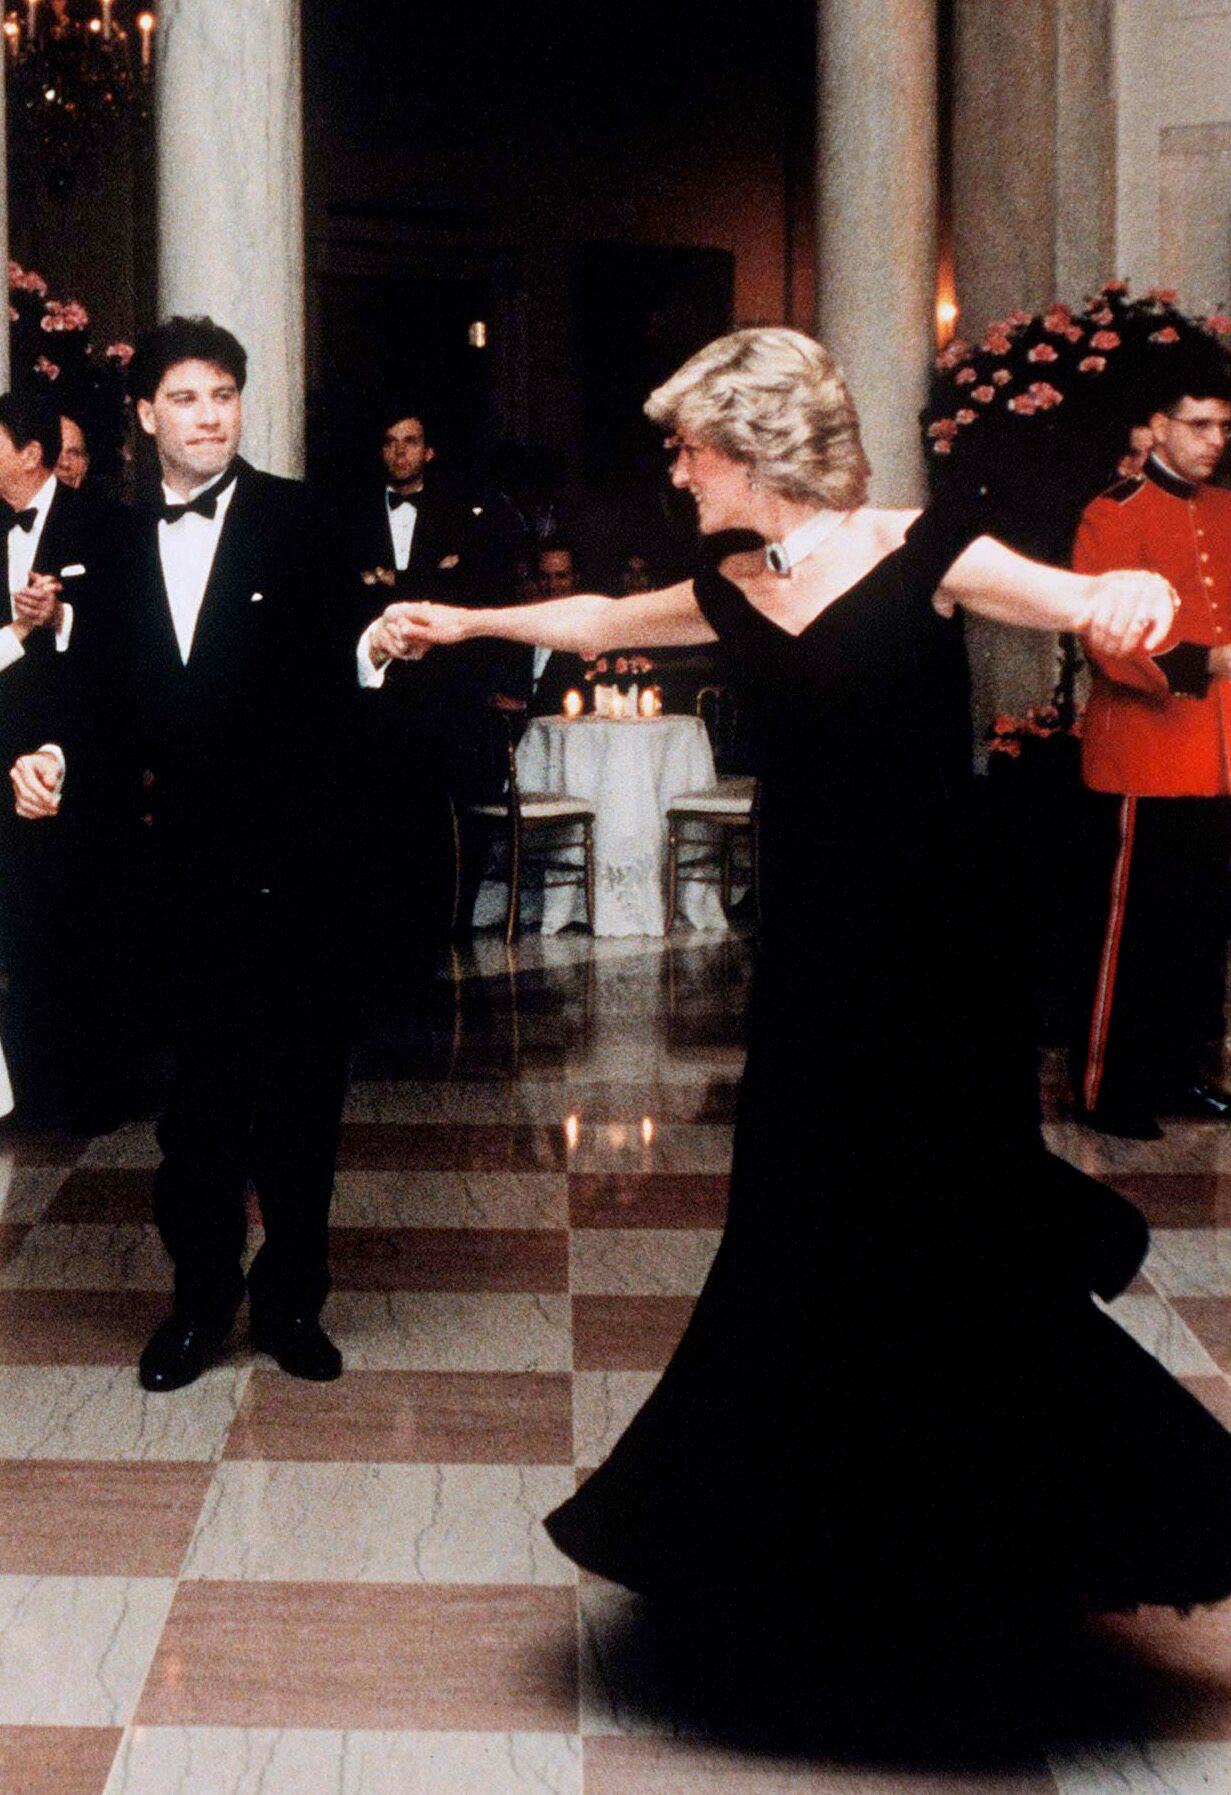 Princess Diana dances with John Travolta at the White House | Getty Images